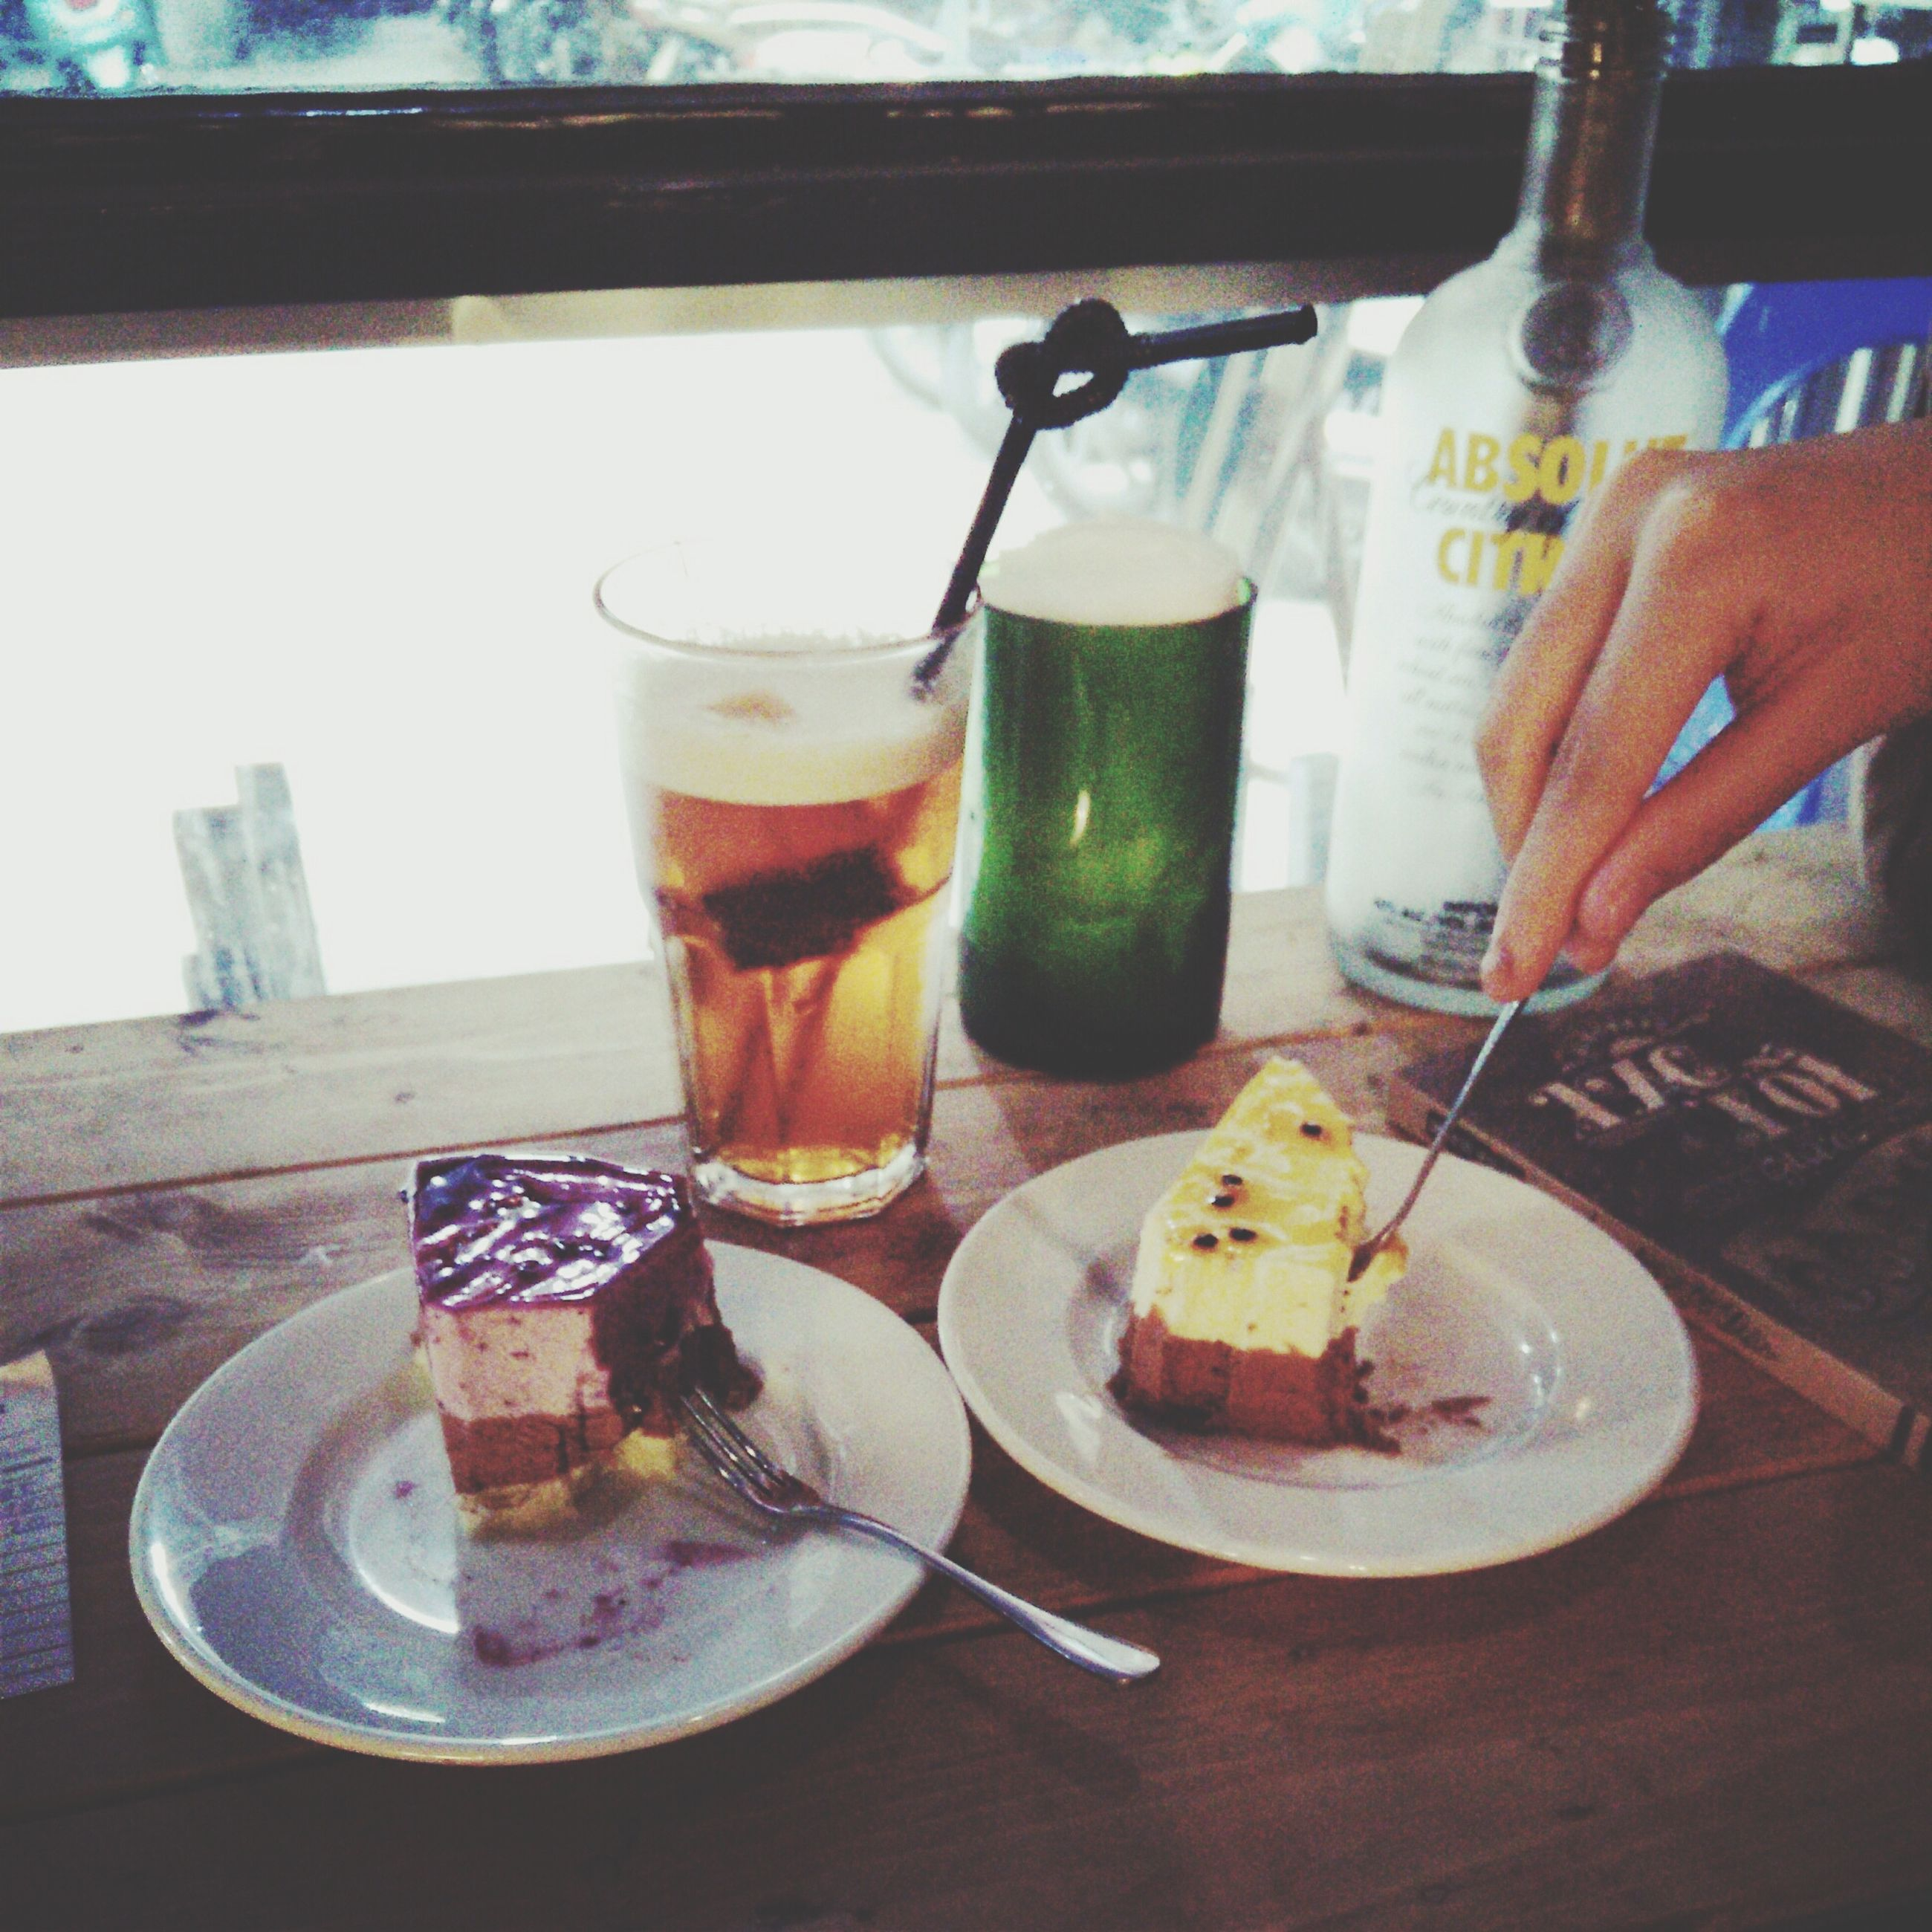 food and drink, freshness, drink, table, food, refreshment, indoors, ready-to-eat, drinking glass, still life, serving size, plate, healthy eating, indulgence, close-up, sweet food, restaurant, dessert, glass - material